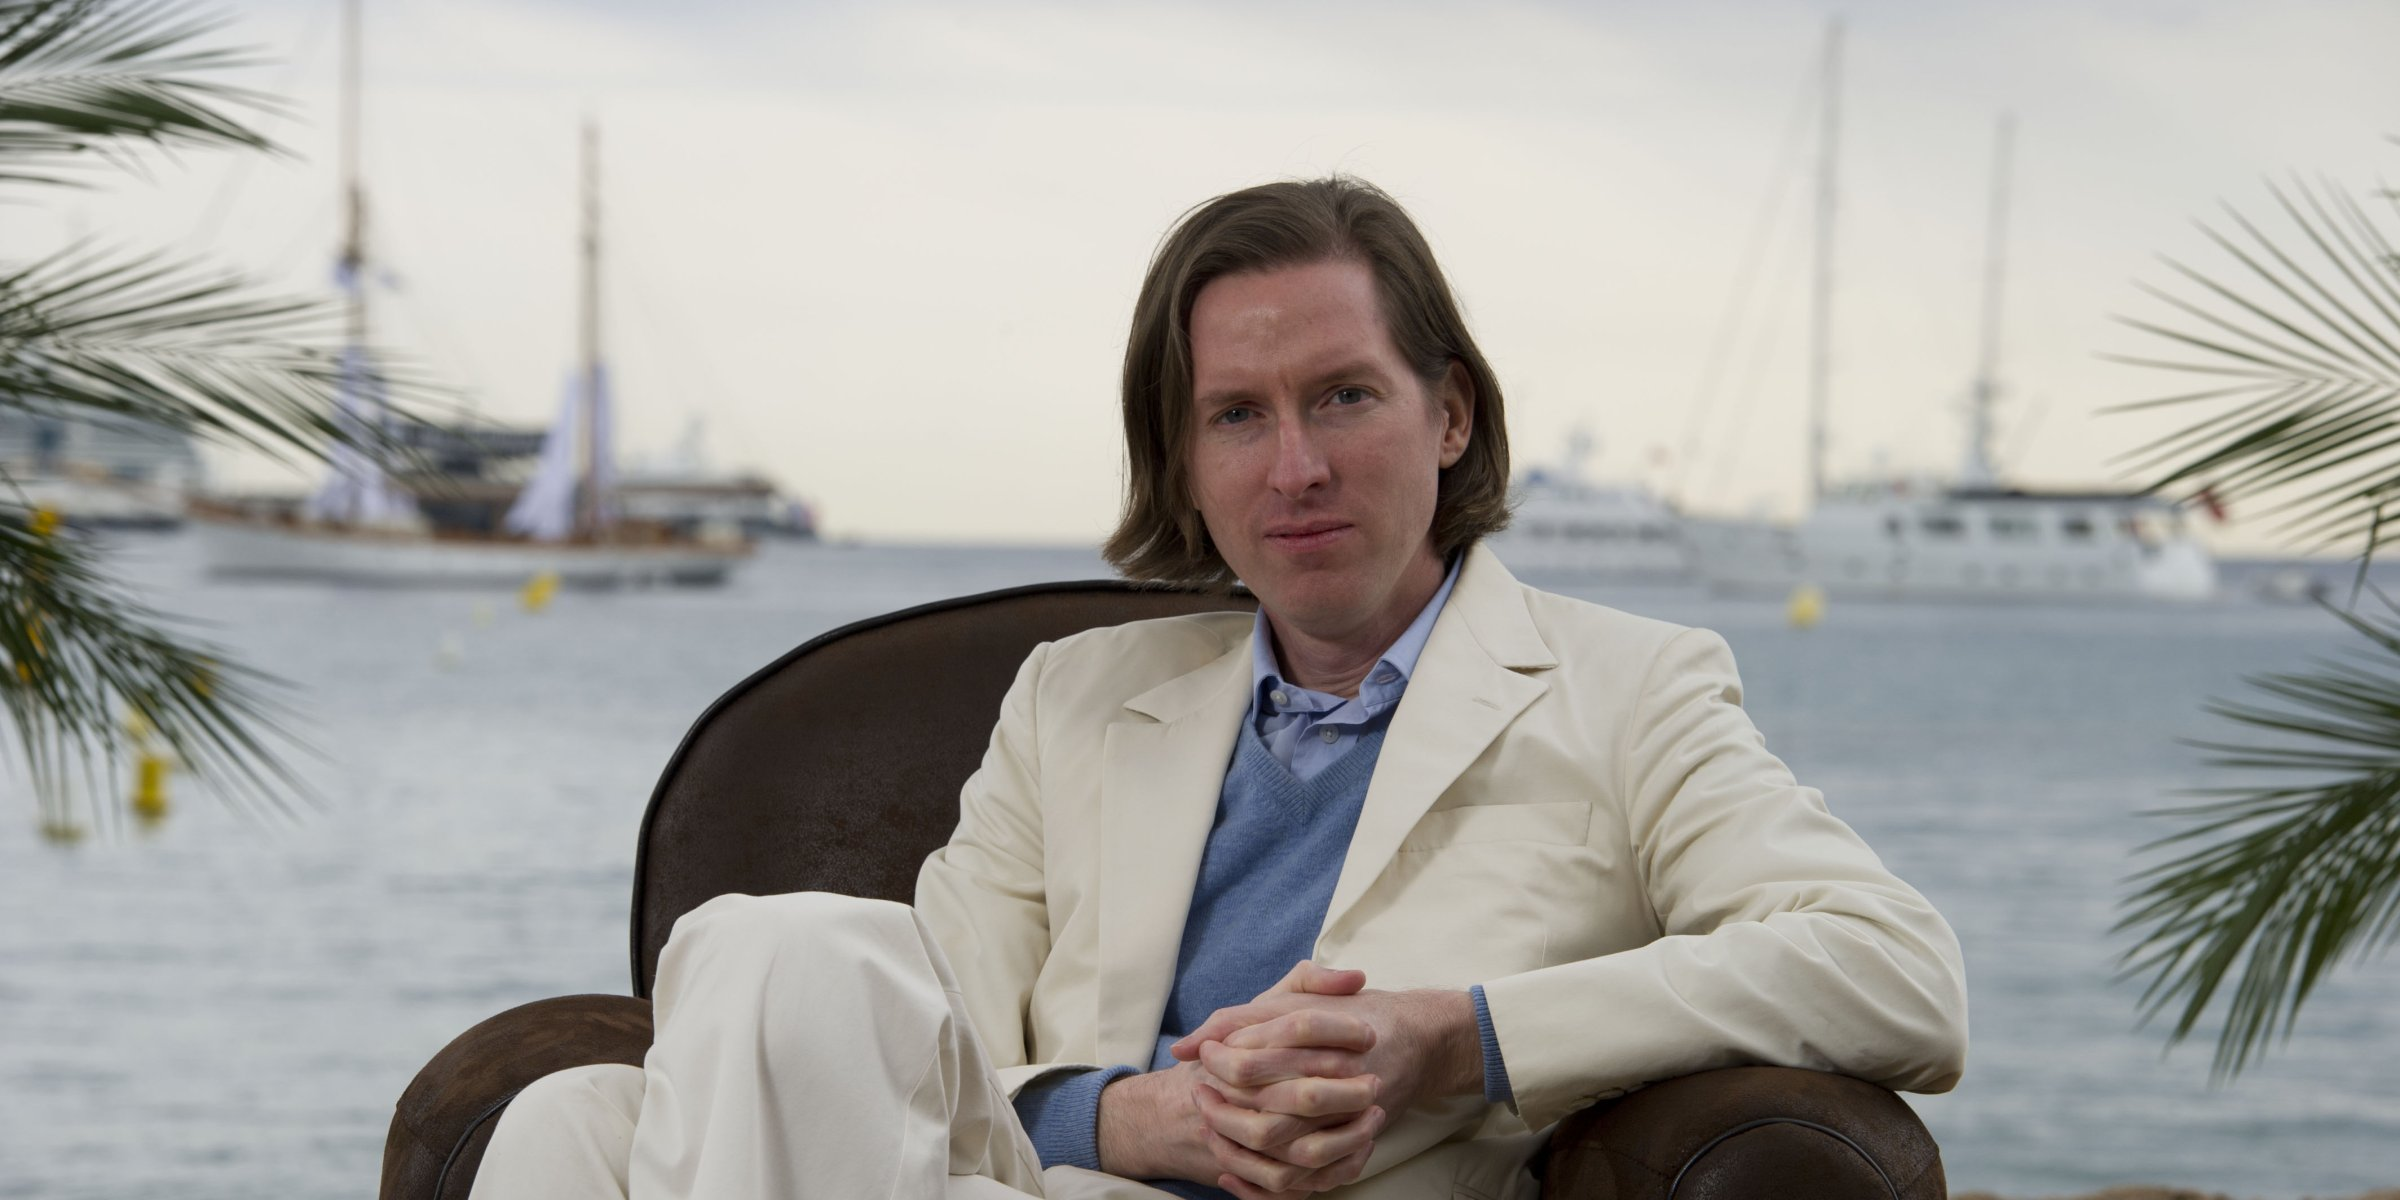 If not canceled, Cannes would highlight Wes Anderson, Pixar movies